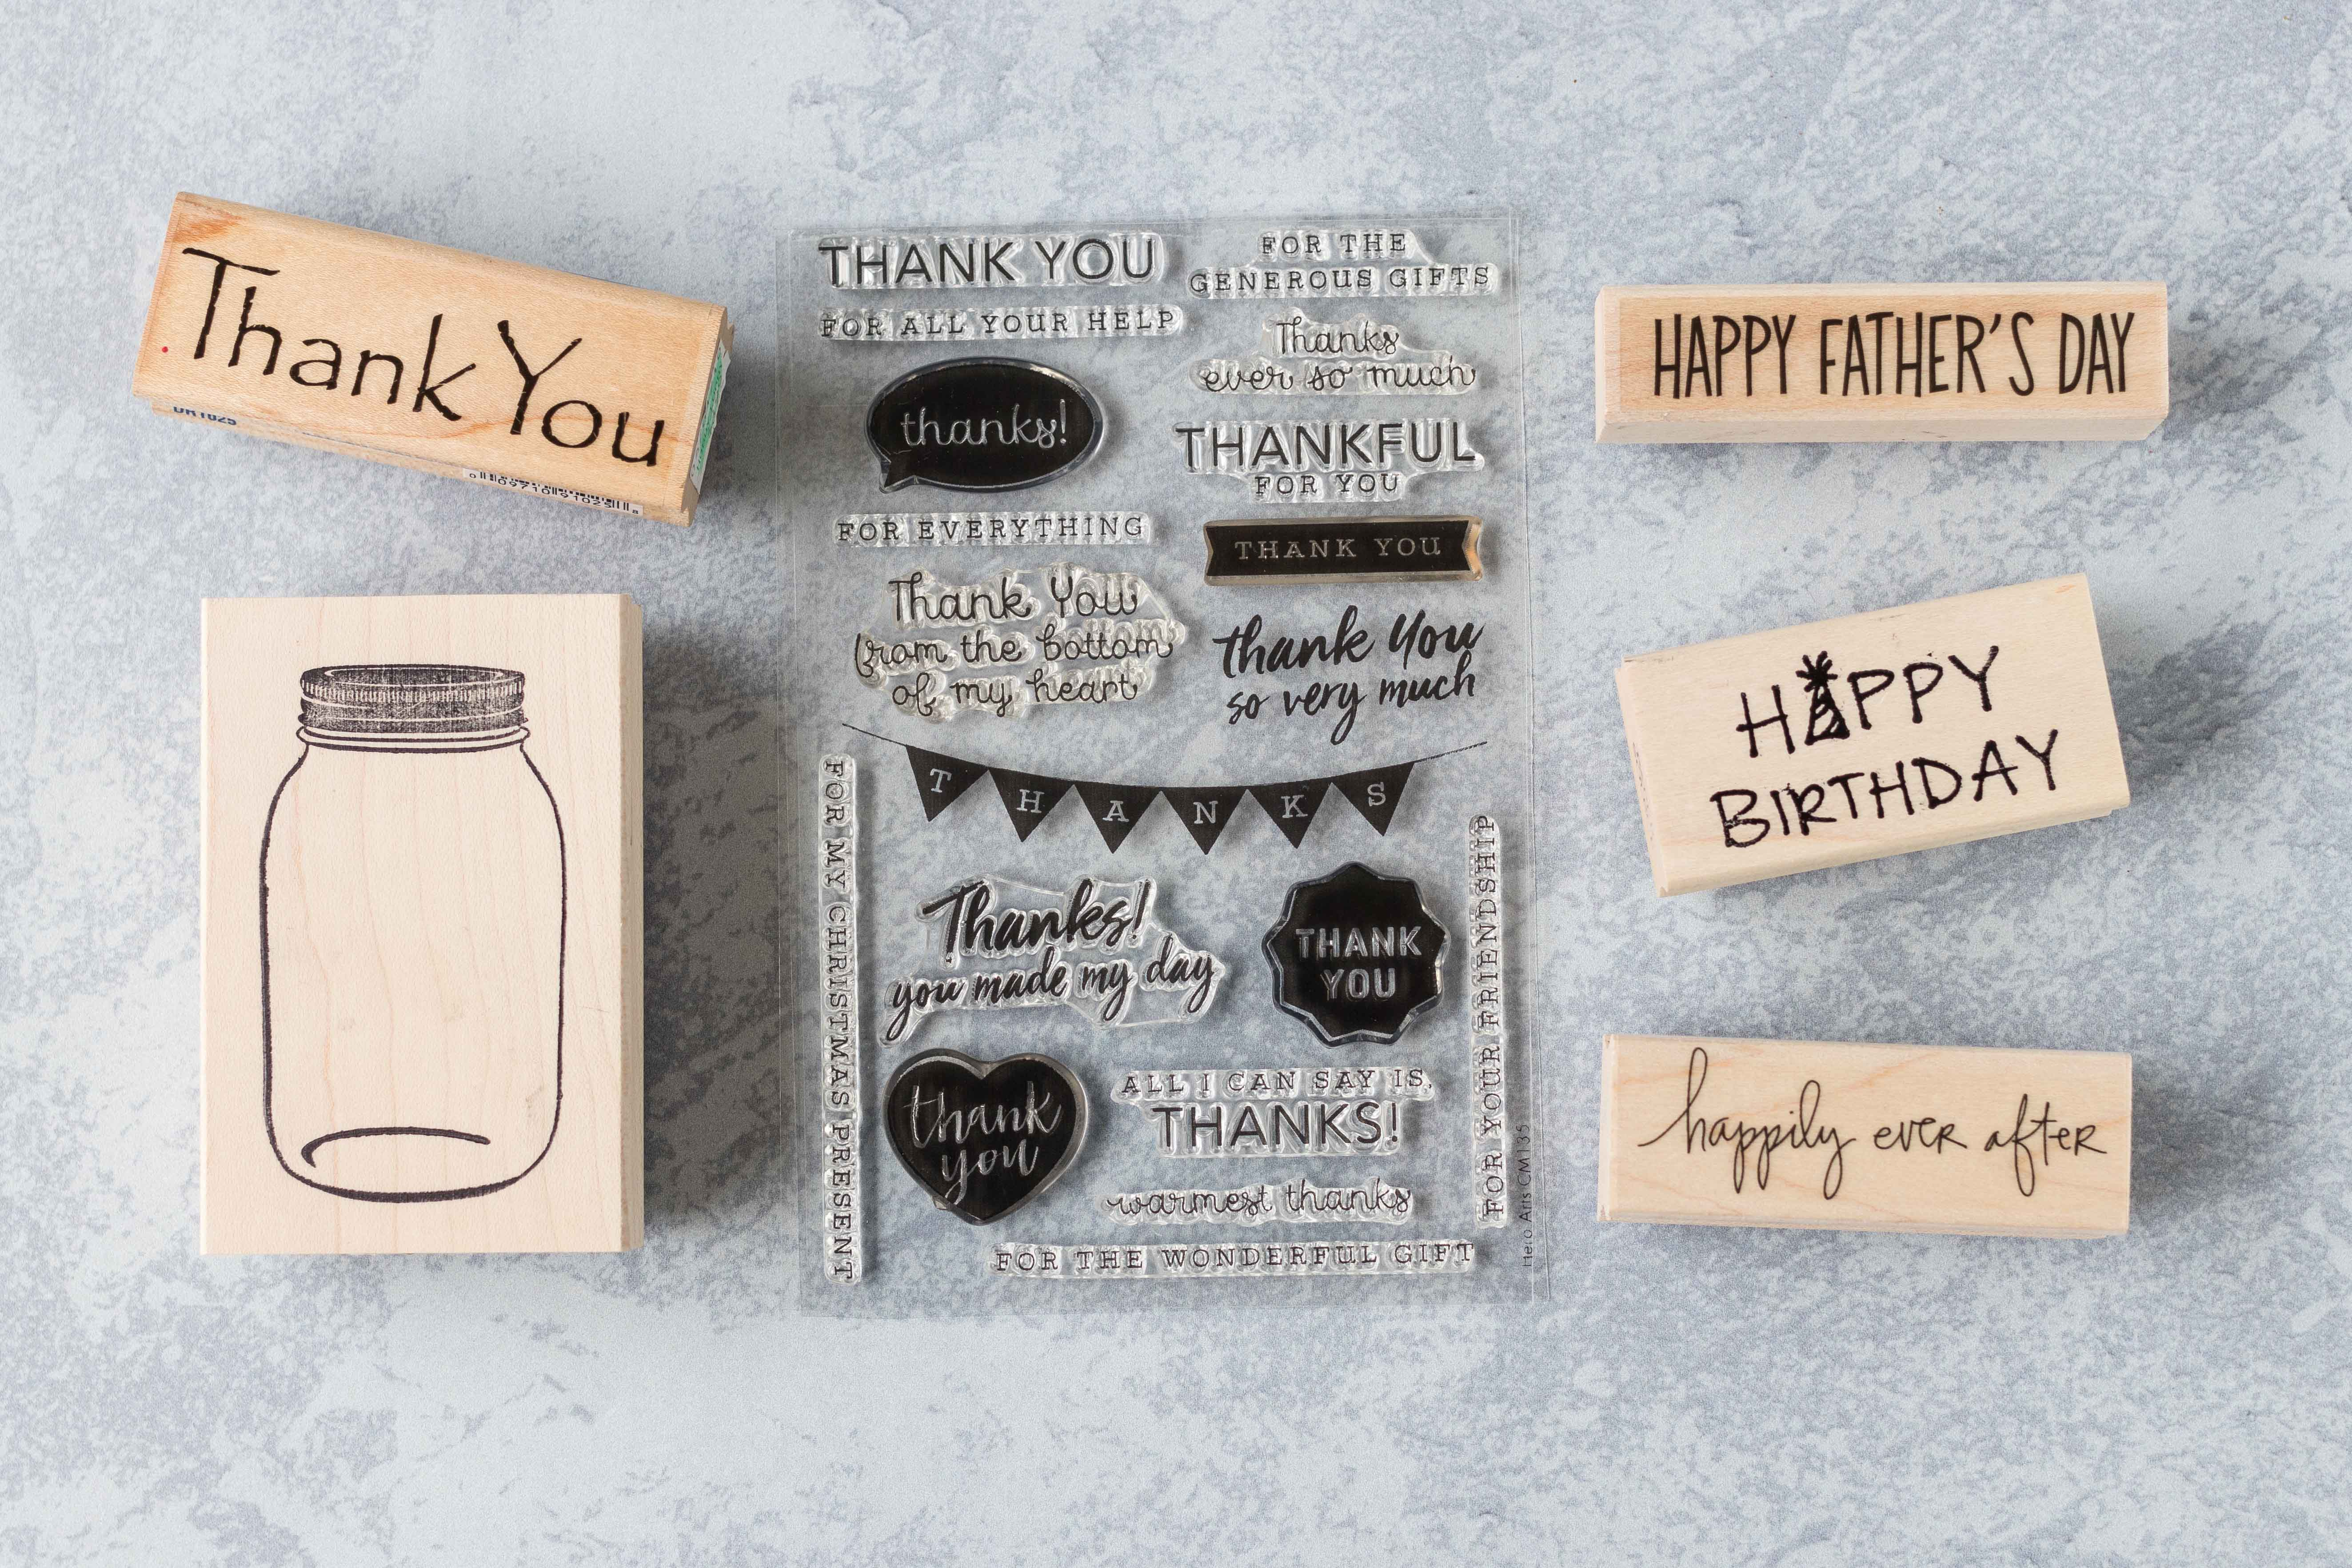 Having an assortment of wood-mounted and clear stamps for general purpose and special occasions is key for making your own greeting cards. #cardmaking #greetingcards #rubberstamps | https://www.roseclearfield.com